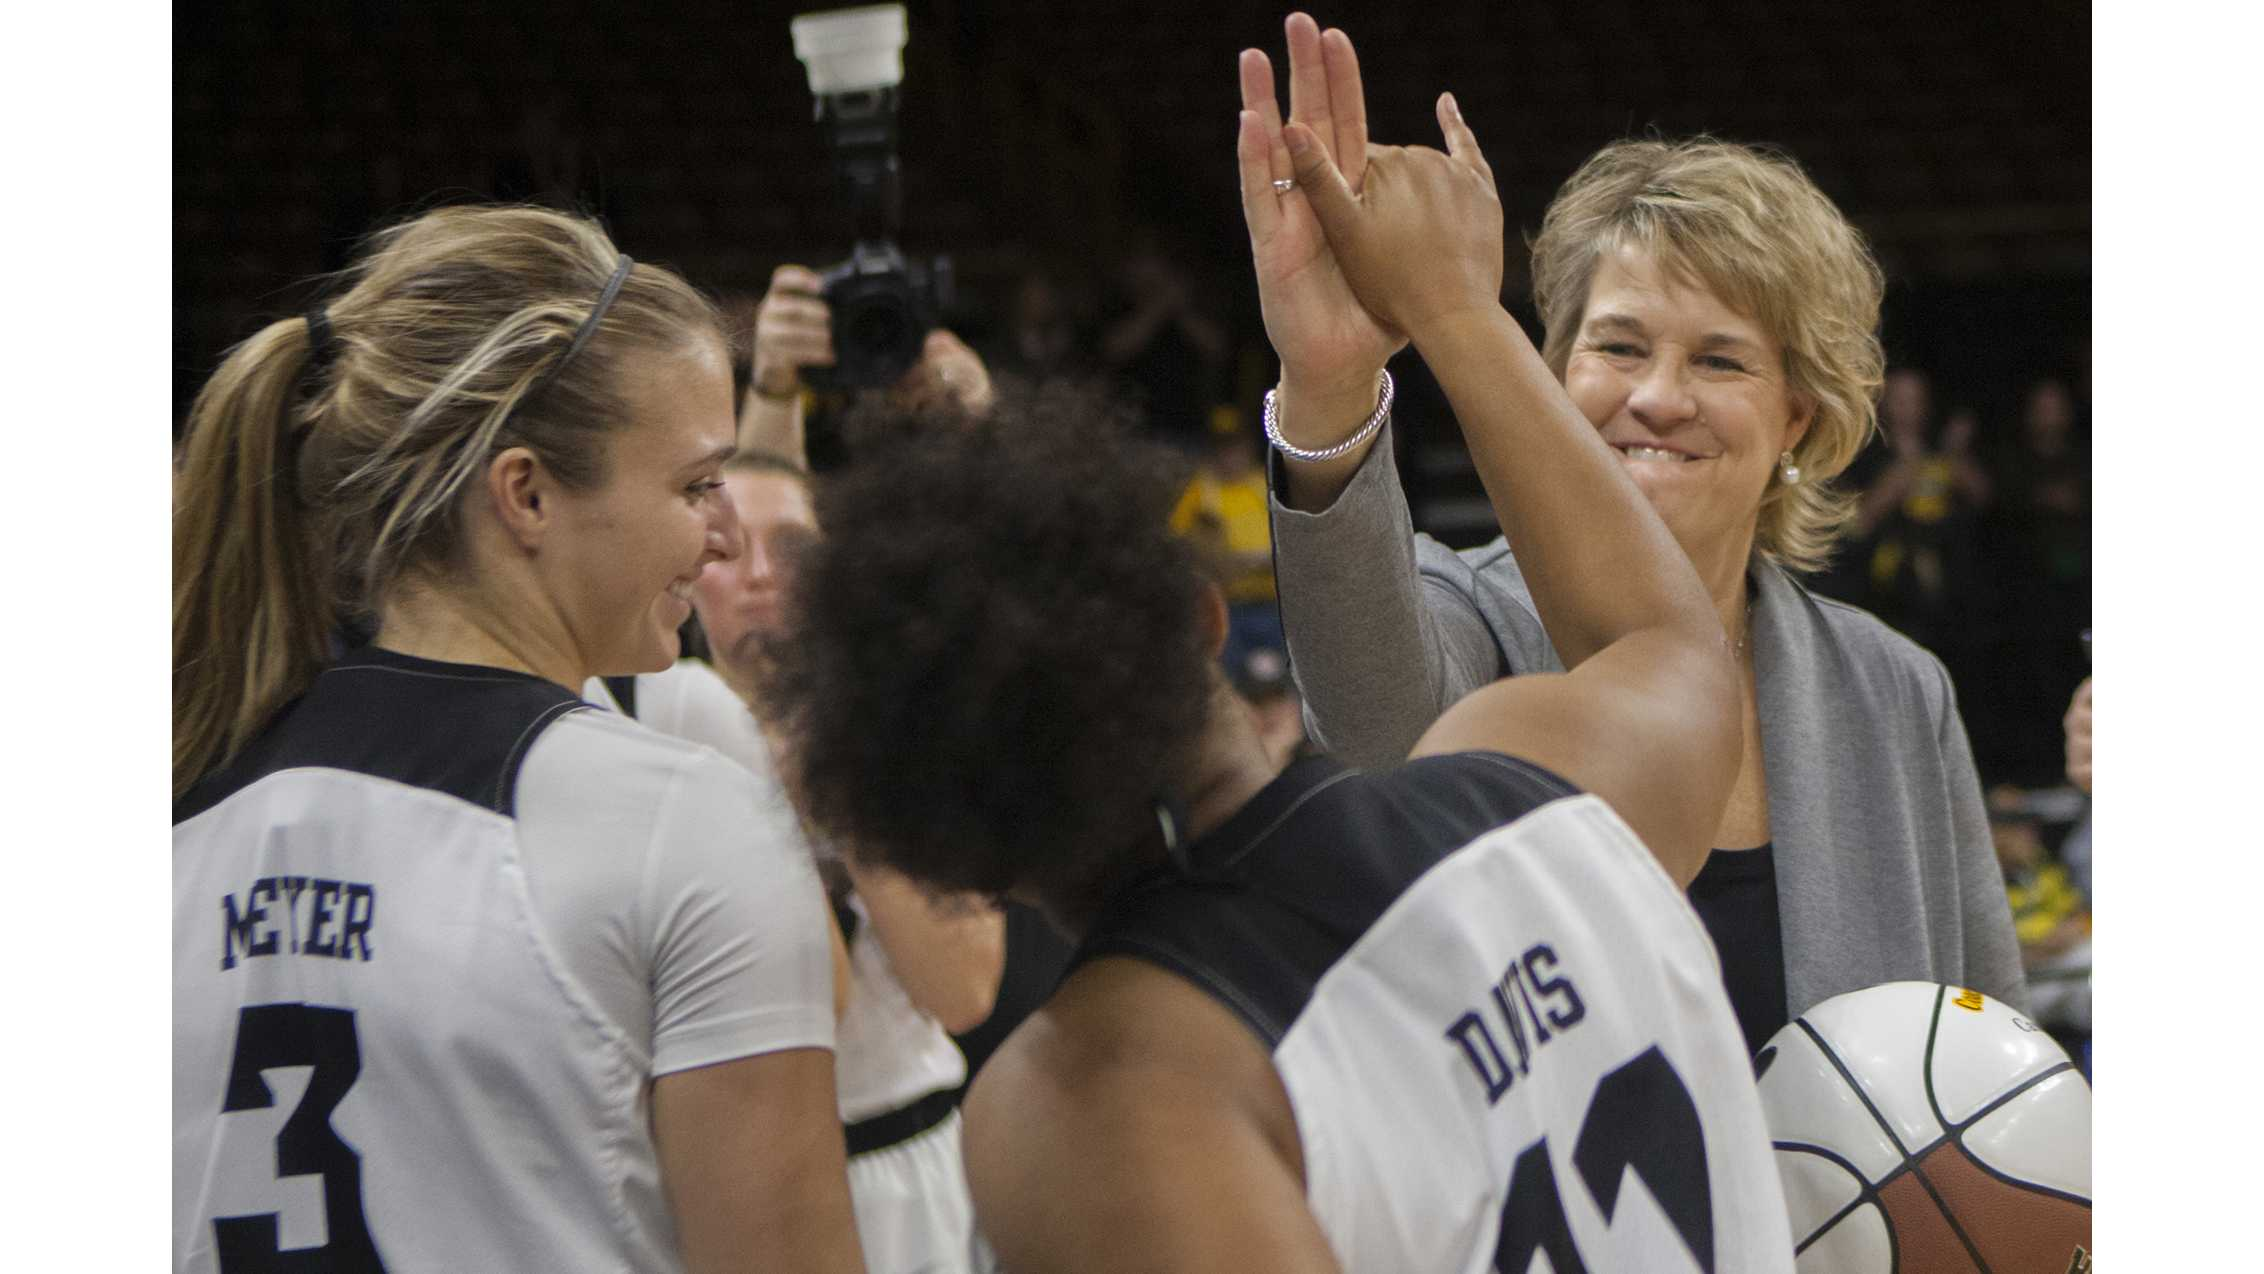 Iowa head coach Lisa Bluder high fives guard Tania Davis during the Iowa/Quinnipiac basketball game at Carver-Hawkeye Arena on Friday, Nov. 10, 2017. The Hawkeyes defeated the Bobcats, 83-67, for Bluder's 700 career win. (Lily Smith/The Daily Iowan)